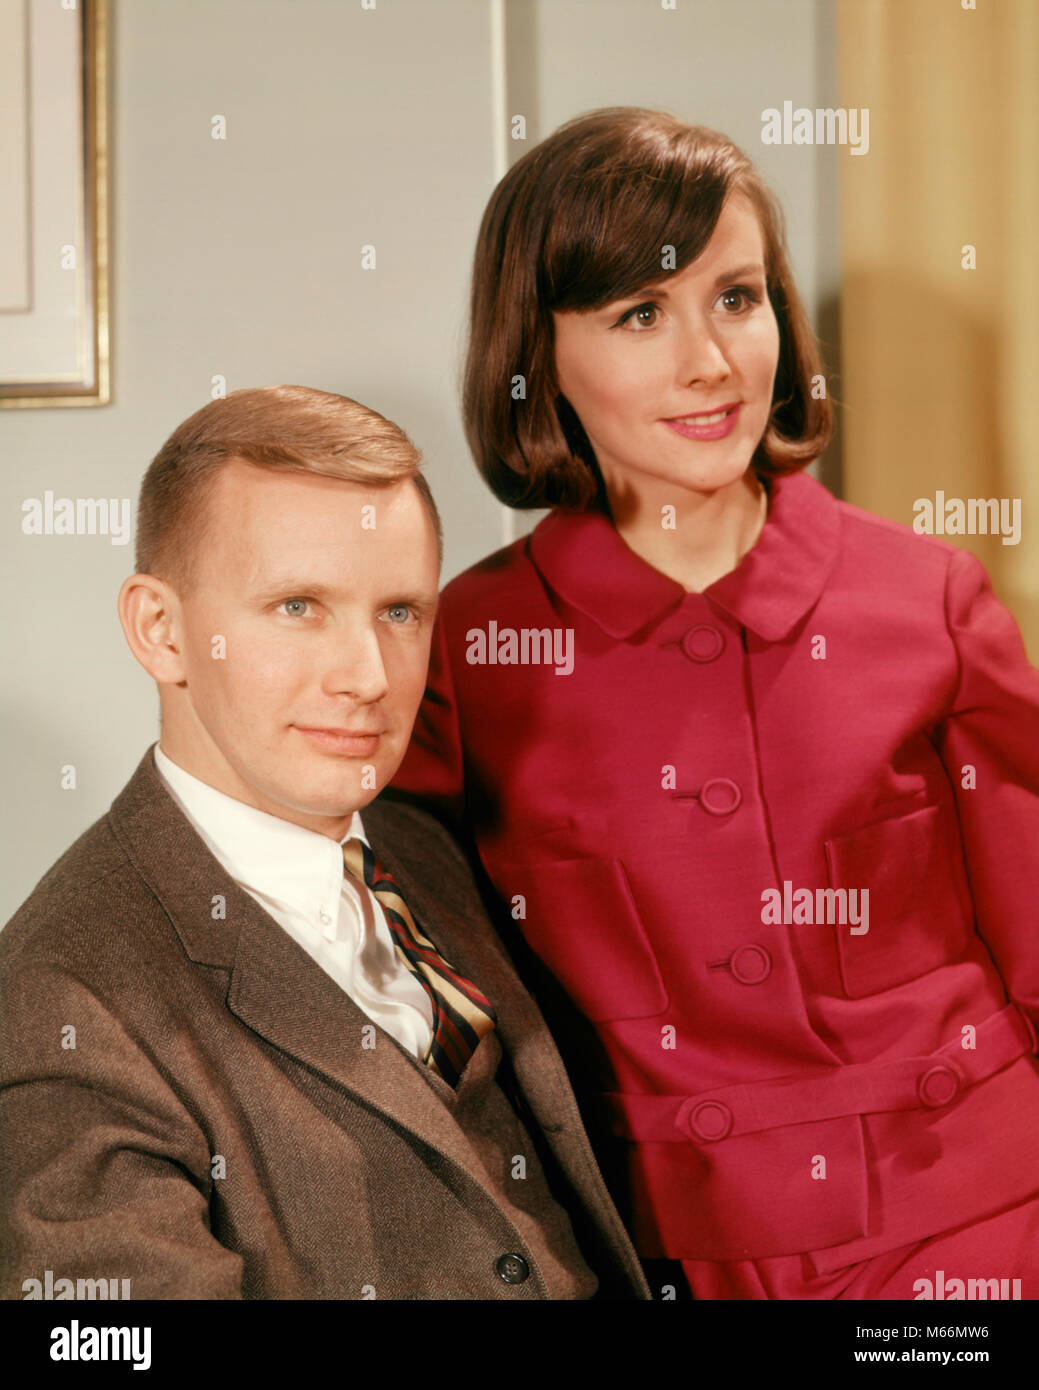 1960s Portrait Serious Young Couple Man In Business Suit Woman Stock